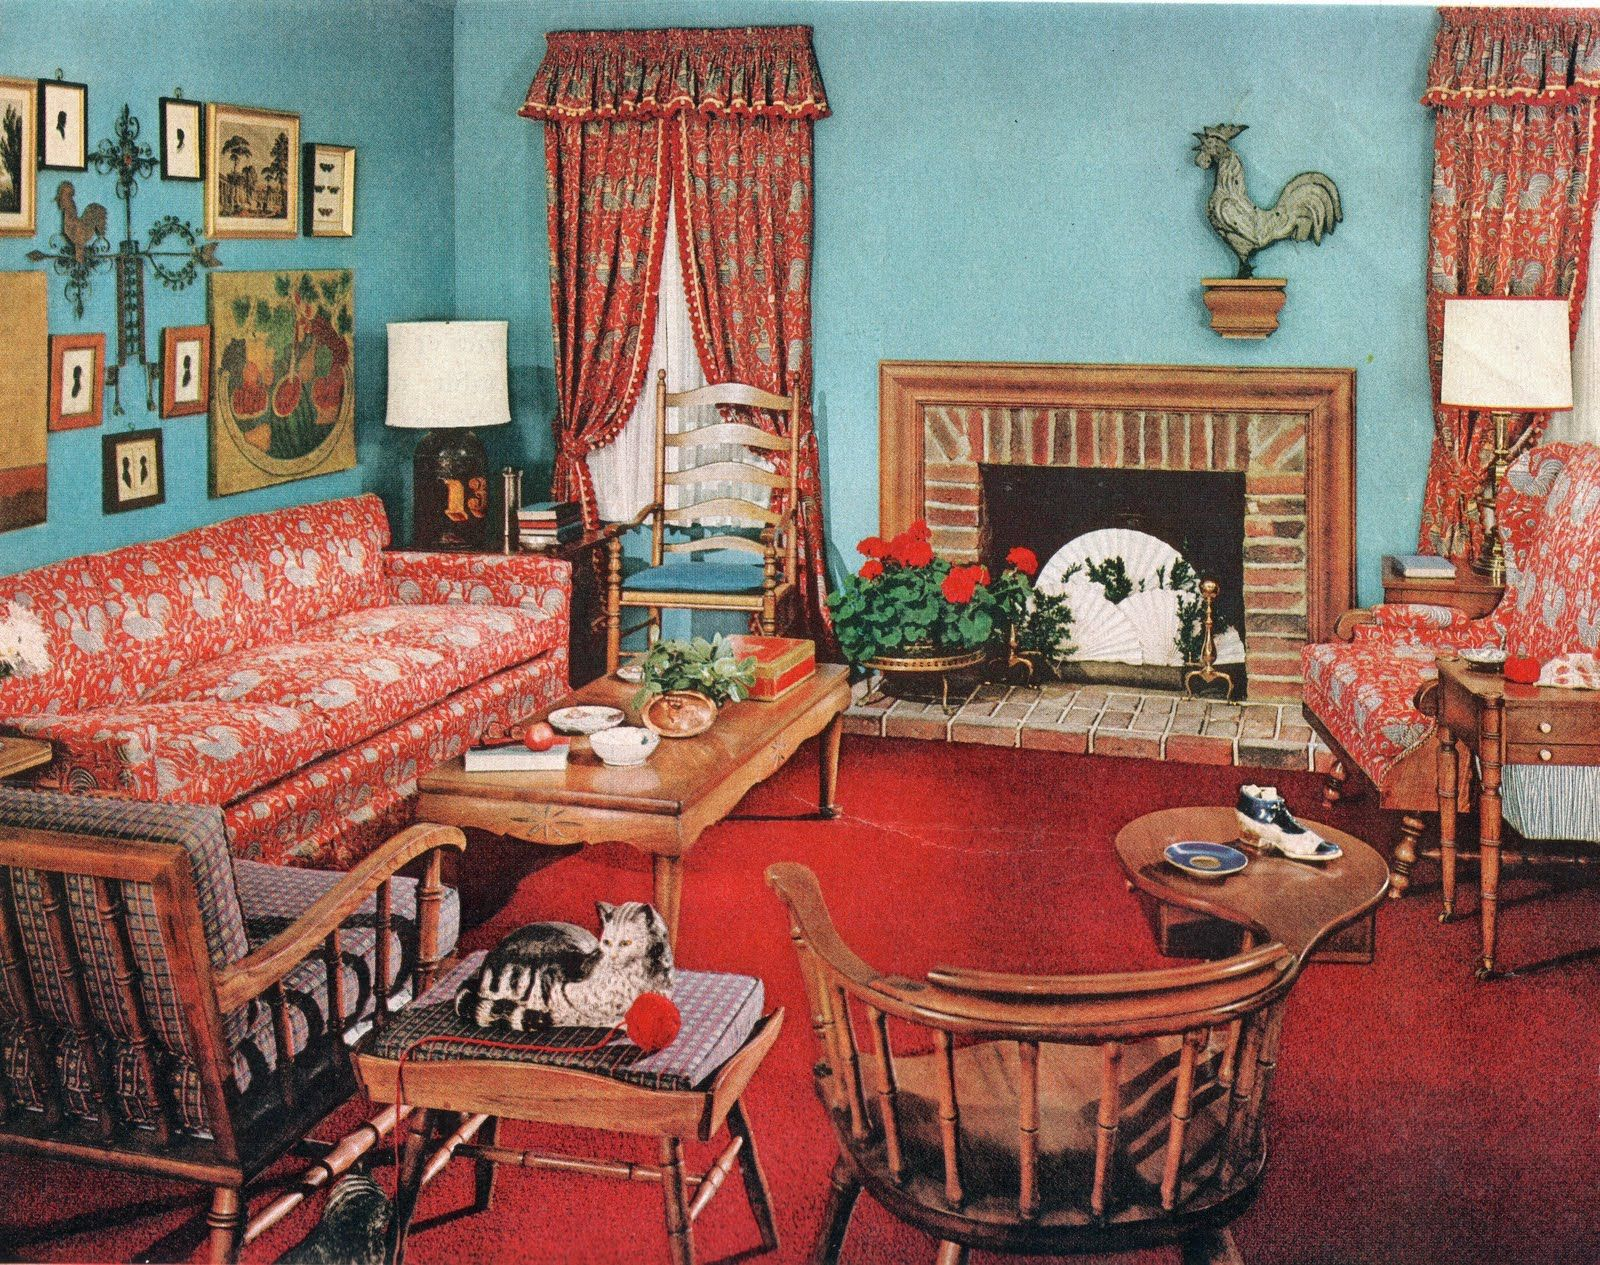 early american style sofas custom sofa manufacturer los angeles 1950 39s living room lots of hard rock